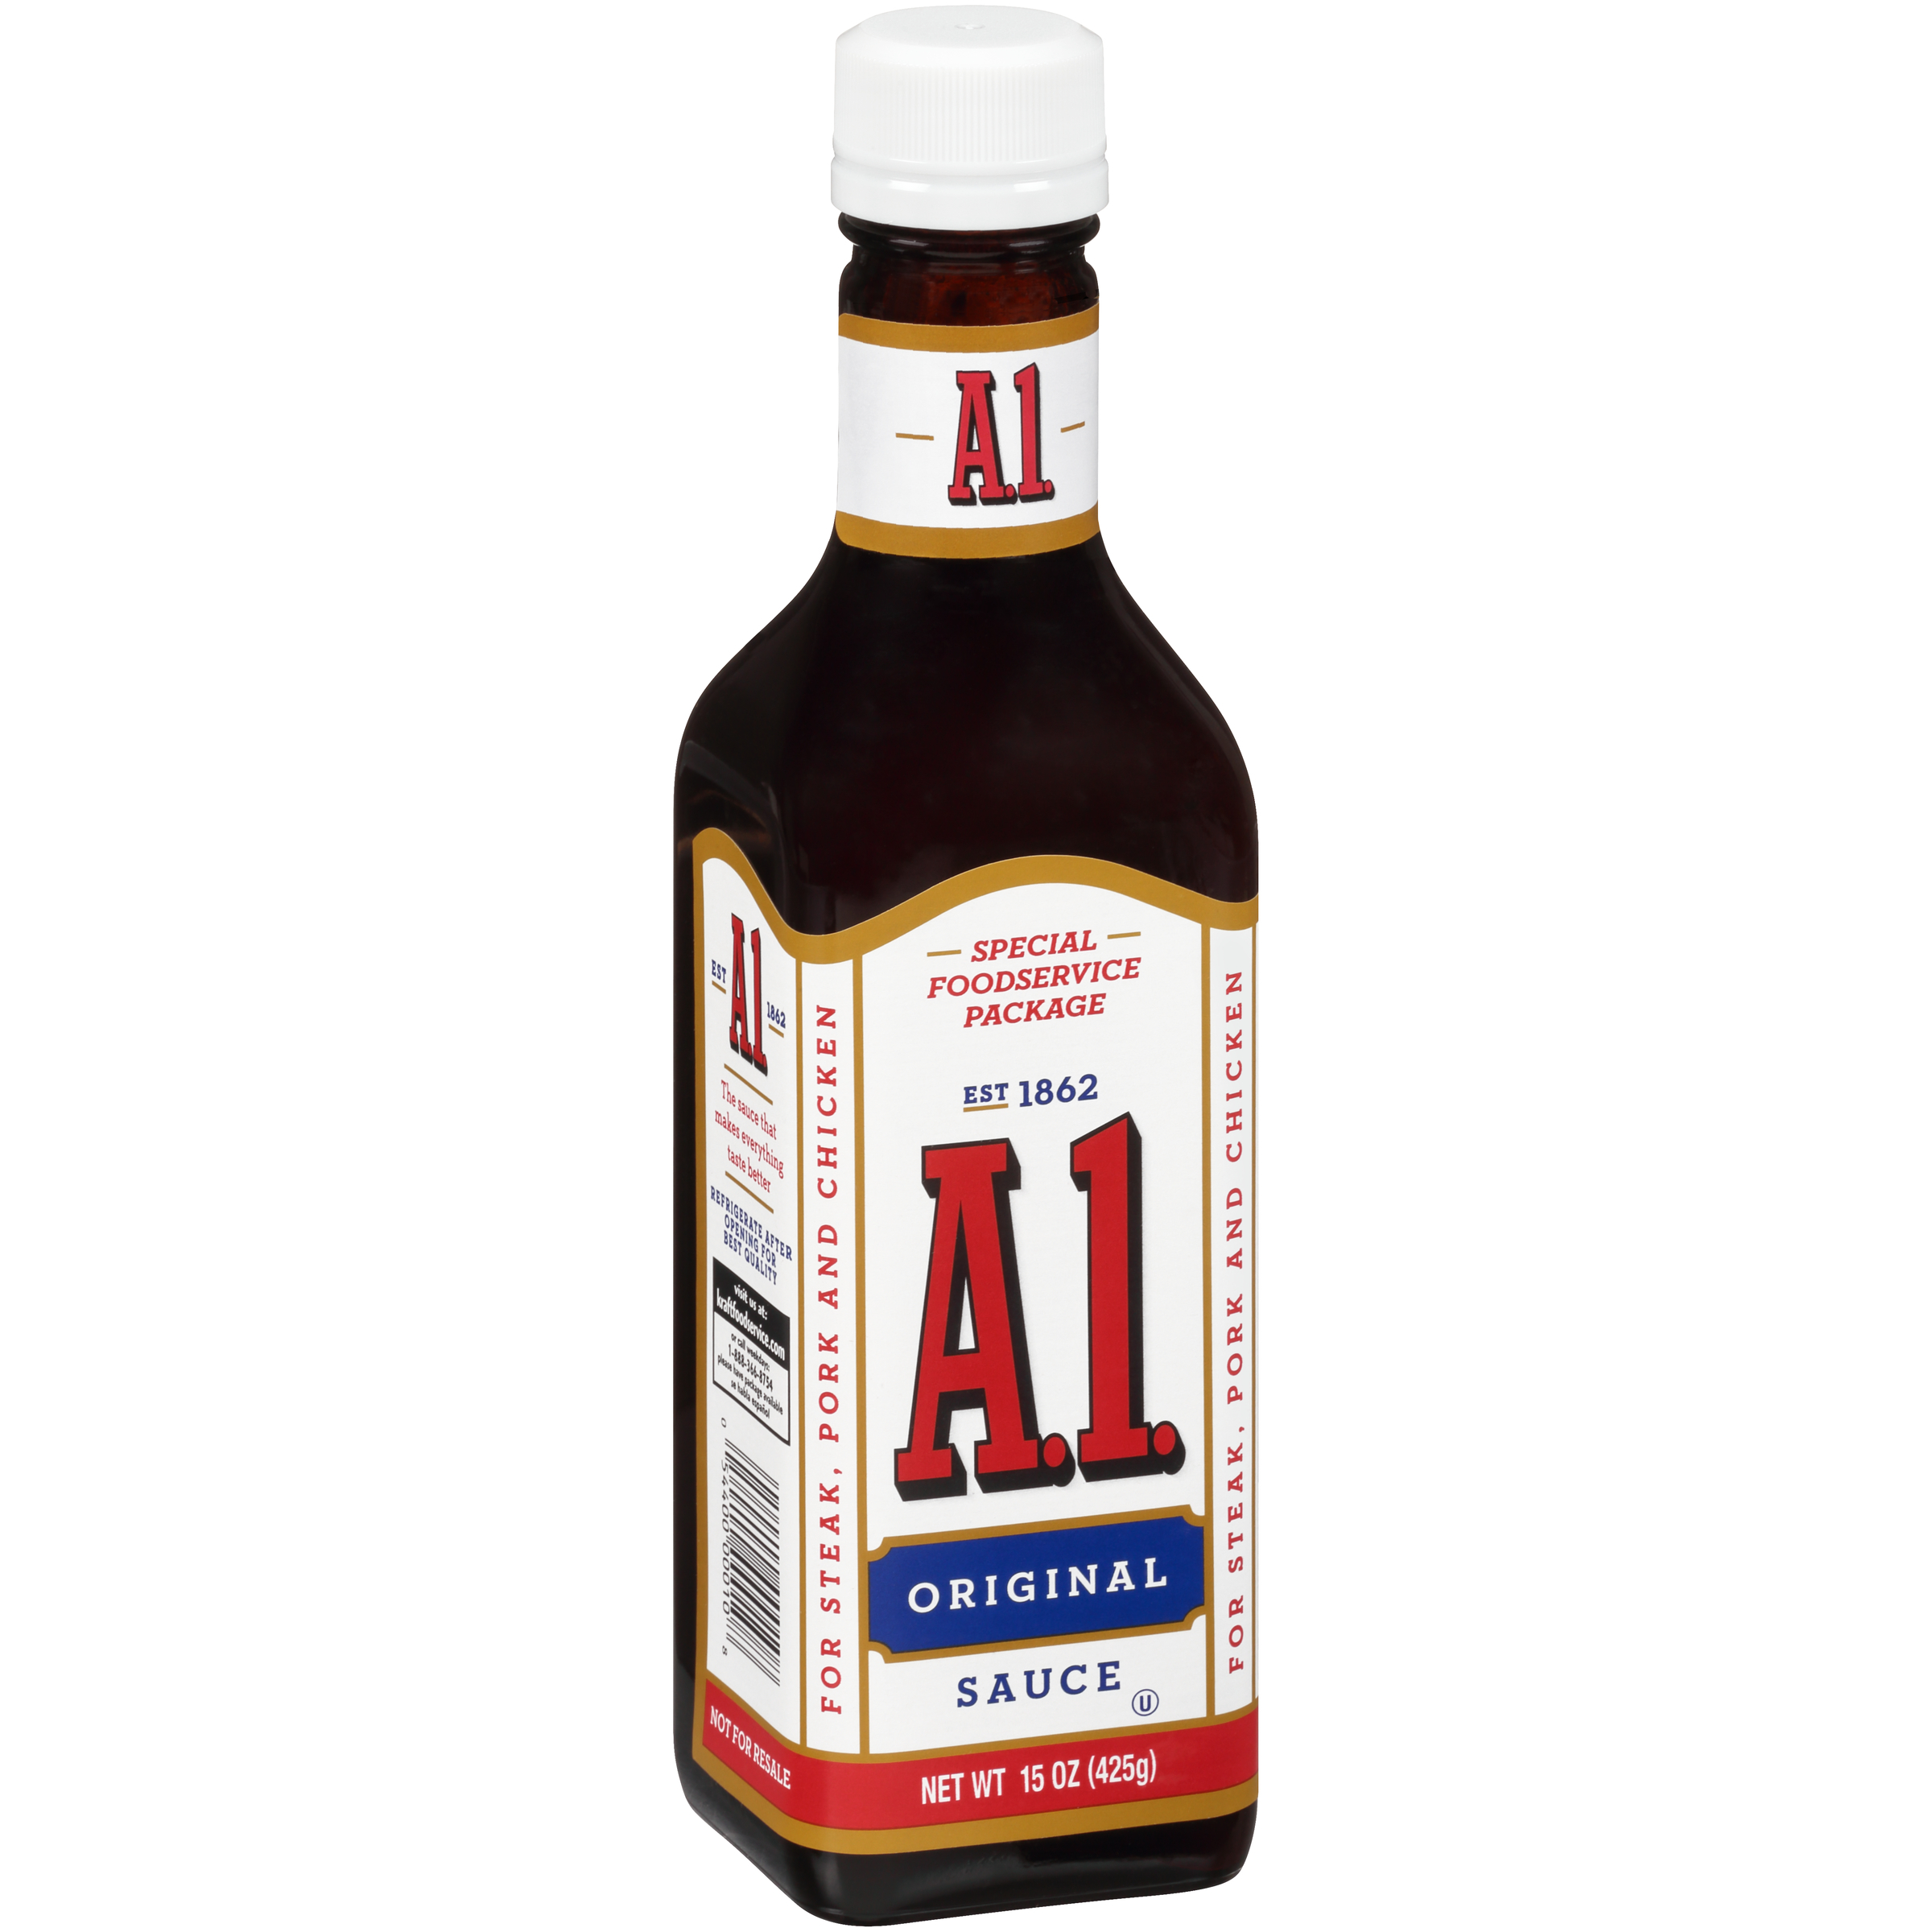 A 1 Original Sauce 12 Ct Pack 15 Oz Bottles Kraft Heinz Foodservice